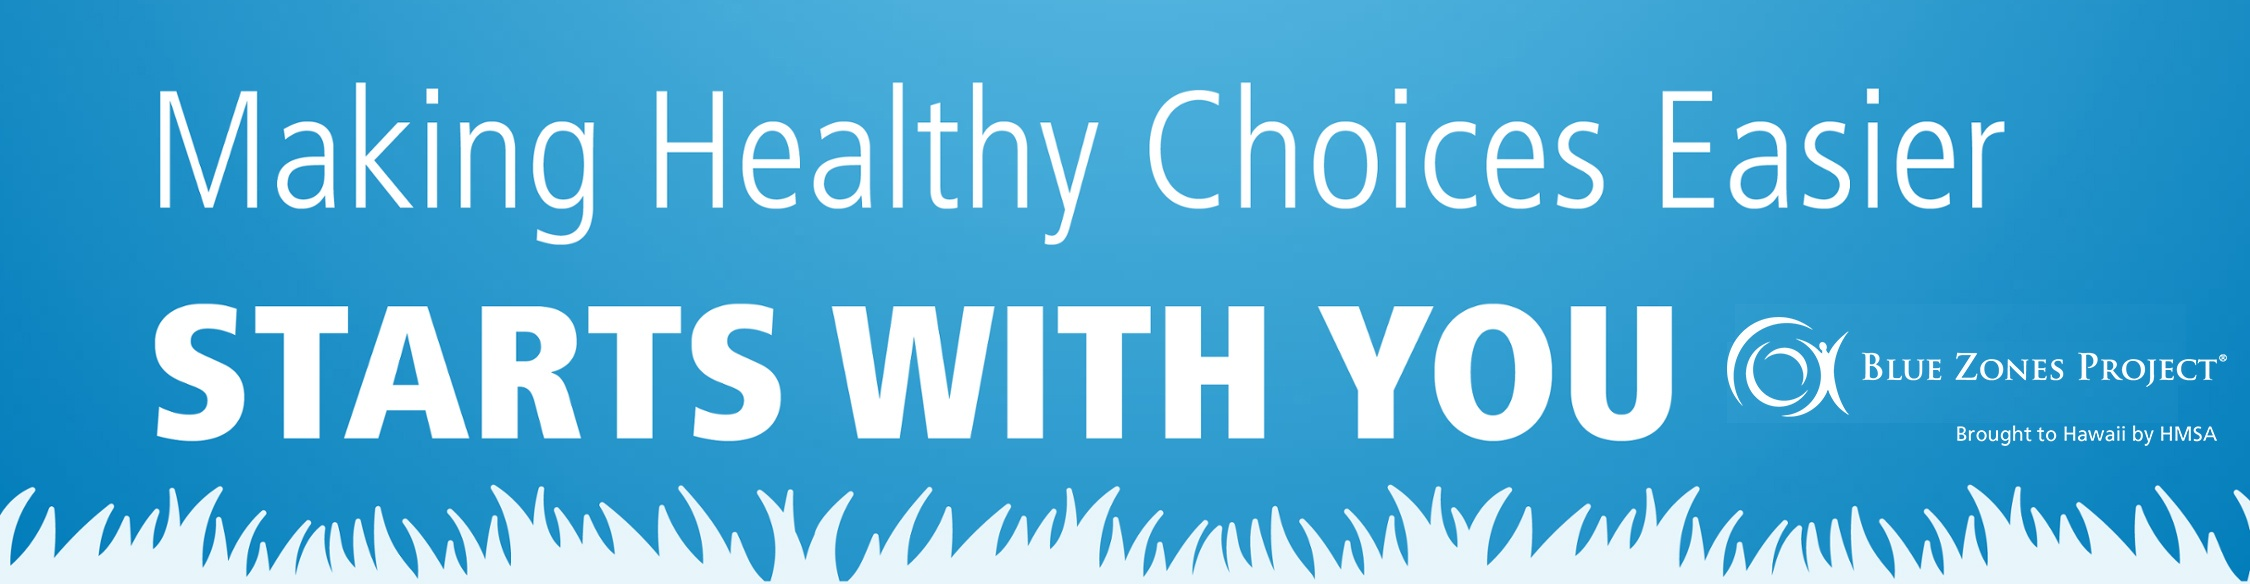 Making Healthy Choices Easier Starts With You